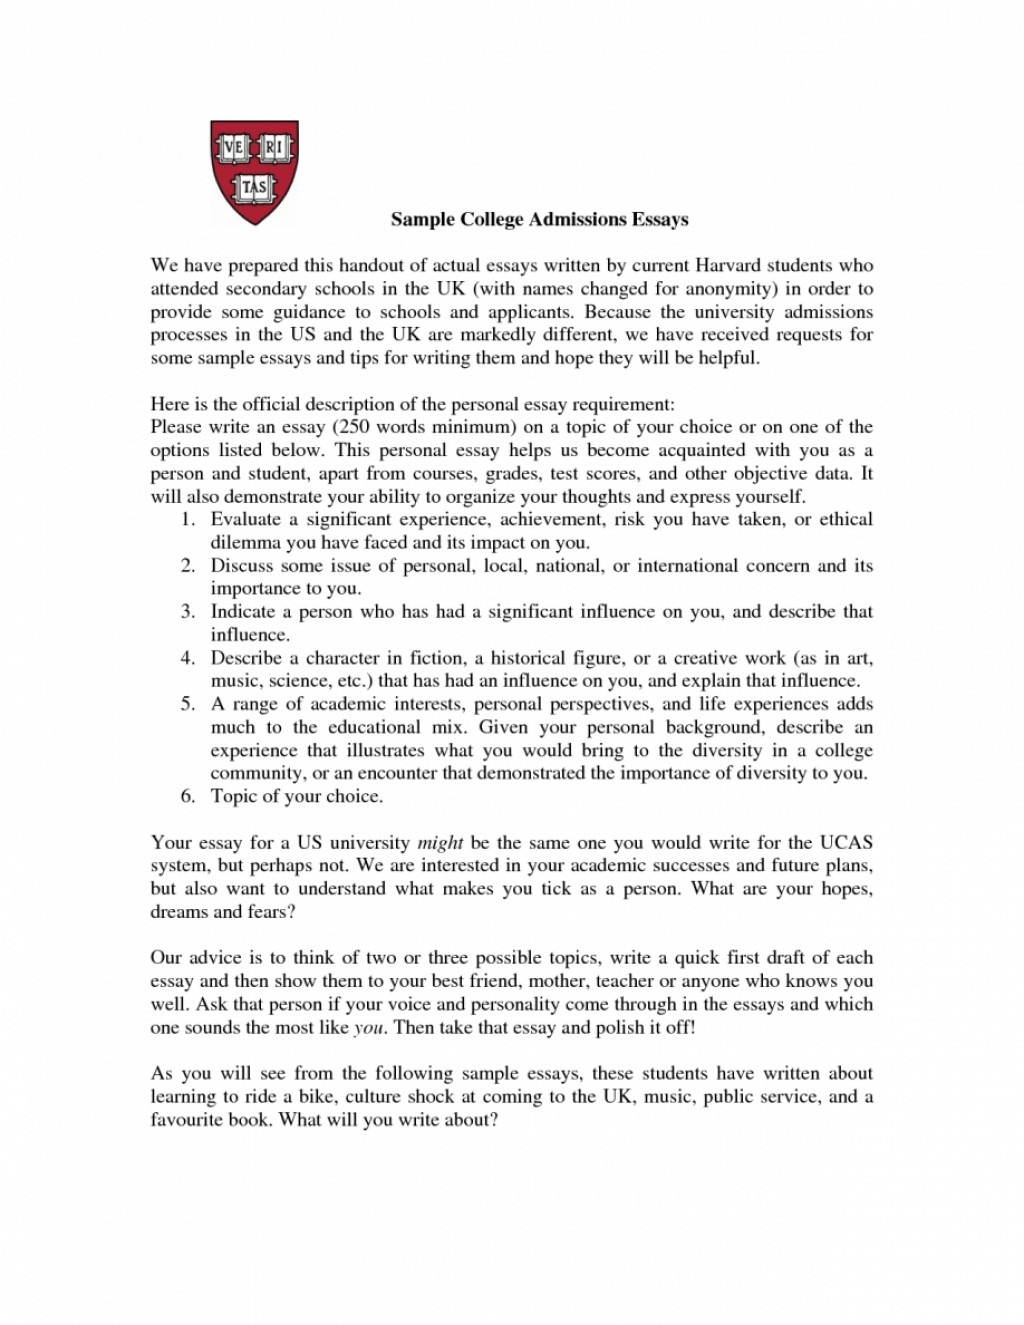 010 College Admissions Essay Sample About Yourself Nemetas Finding Topics Writing Best Essays Talk Tell Us Outline Prompts Me Admission Rare Format Examples Ivy League Large